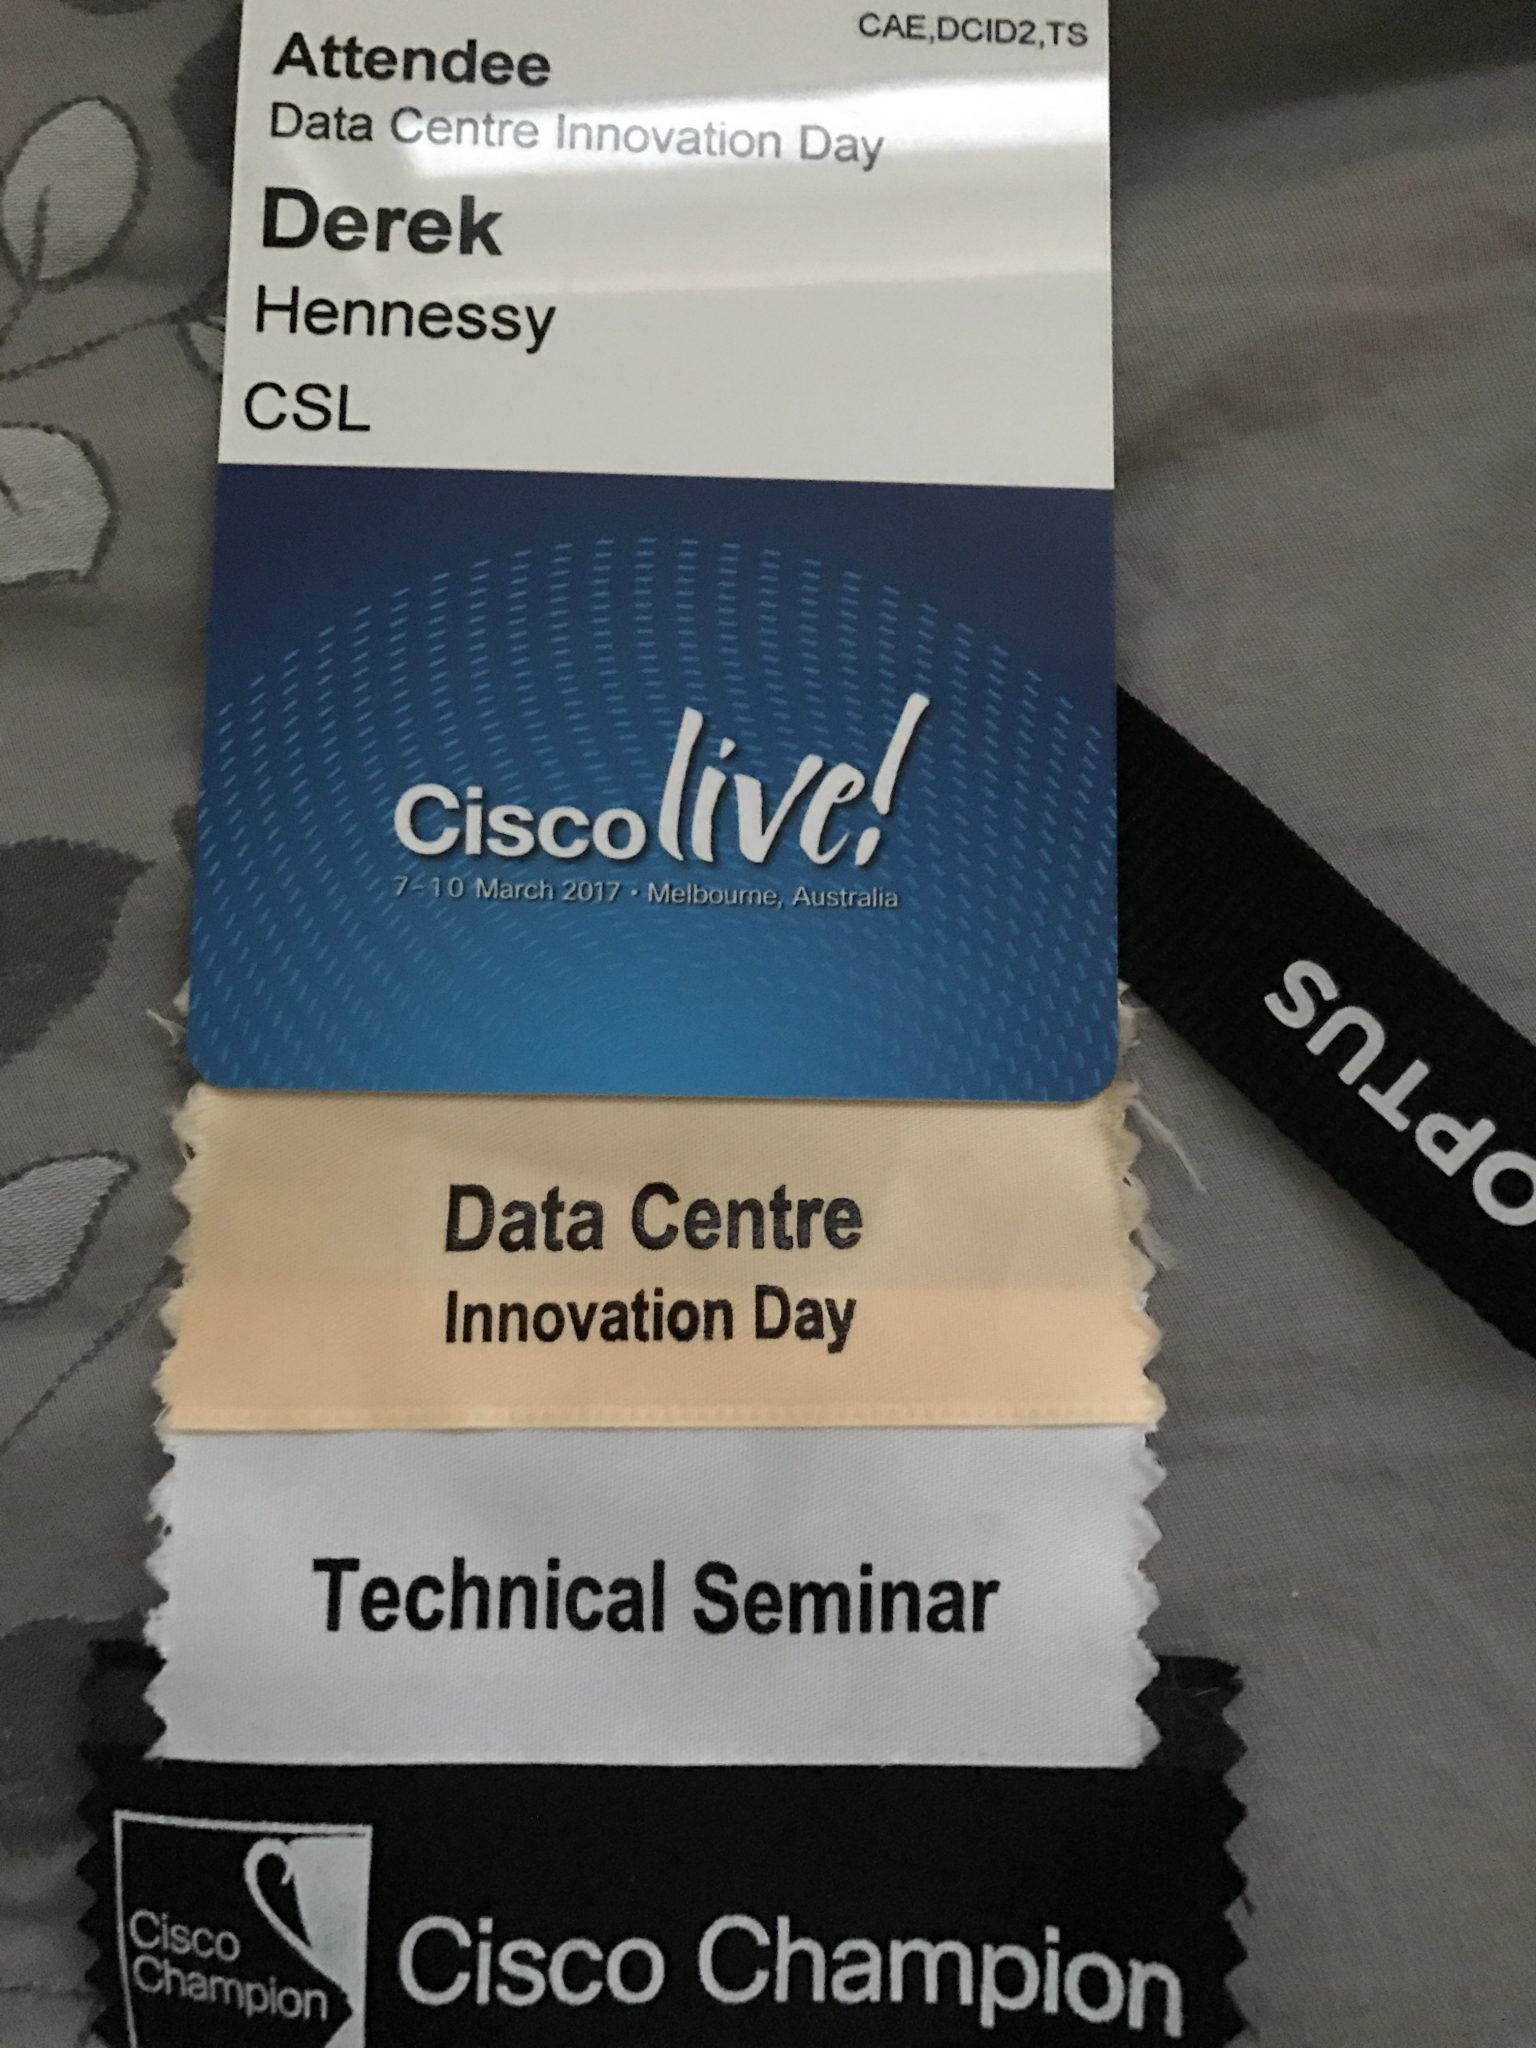 CLMEL-entry card